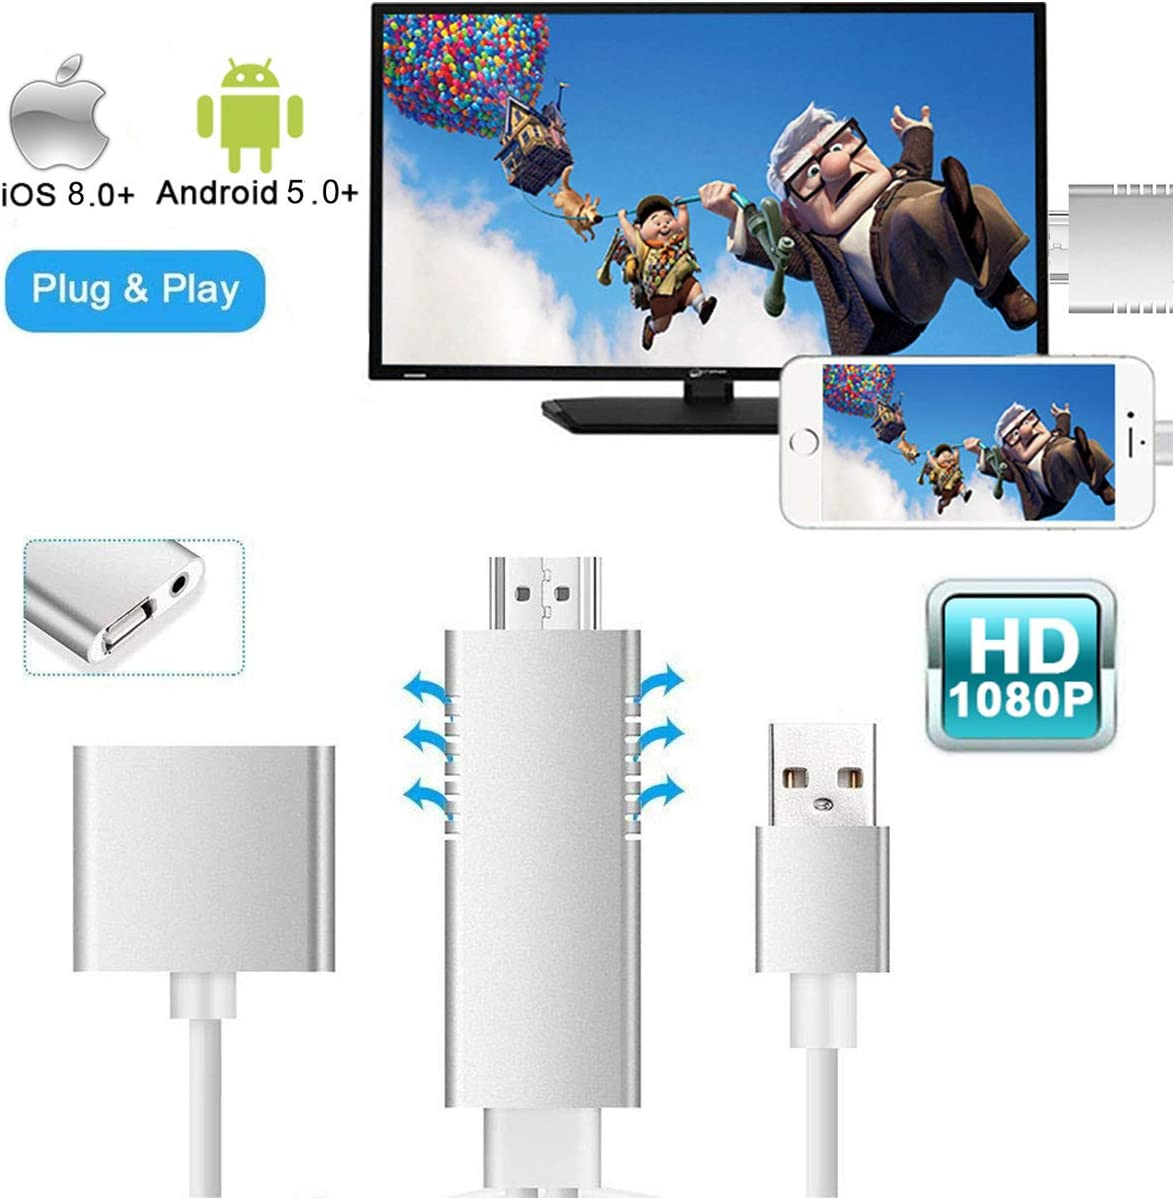 WiFi HDMI HDTV Video Media Player to TV For iPAD iPhone x 5S 6 7 8 Android iOS